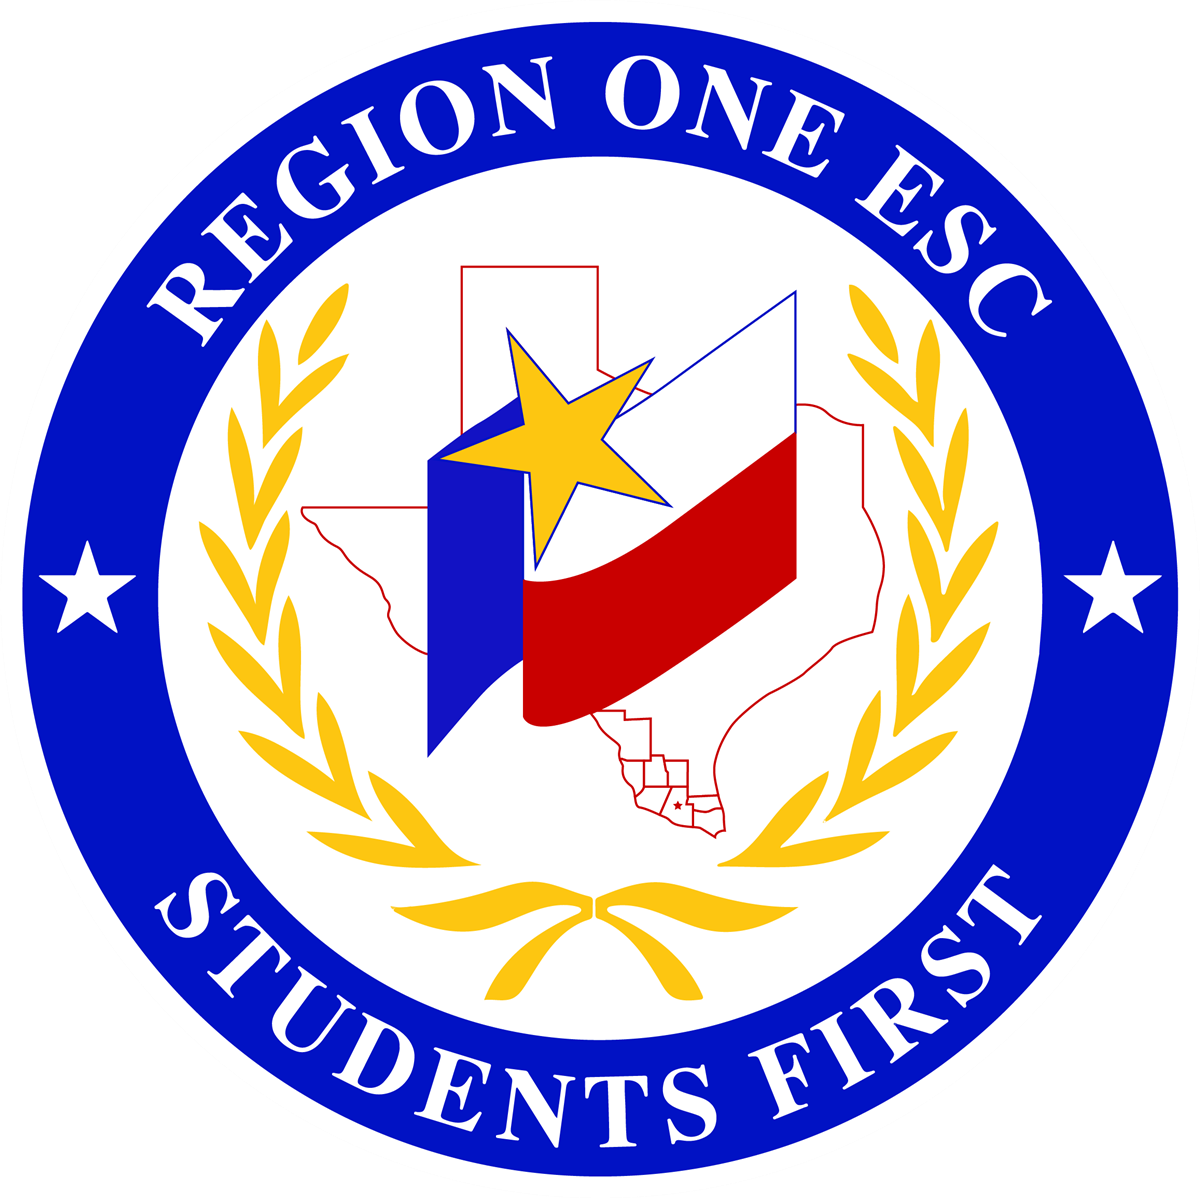 Region One ESC logo